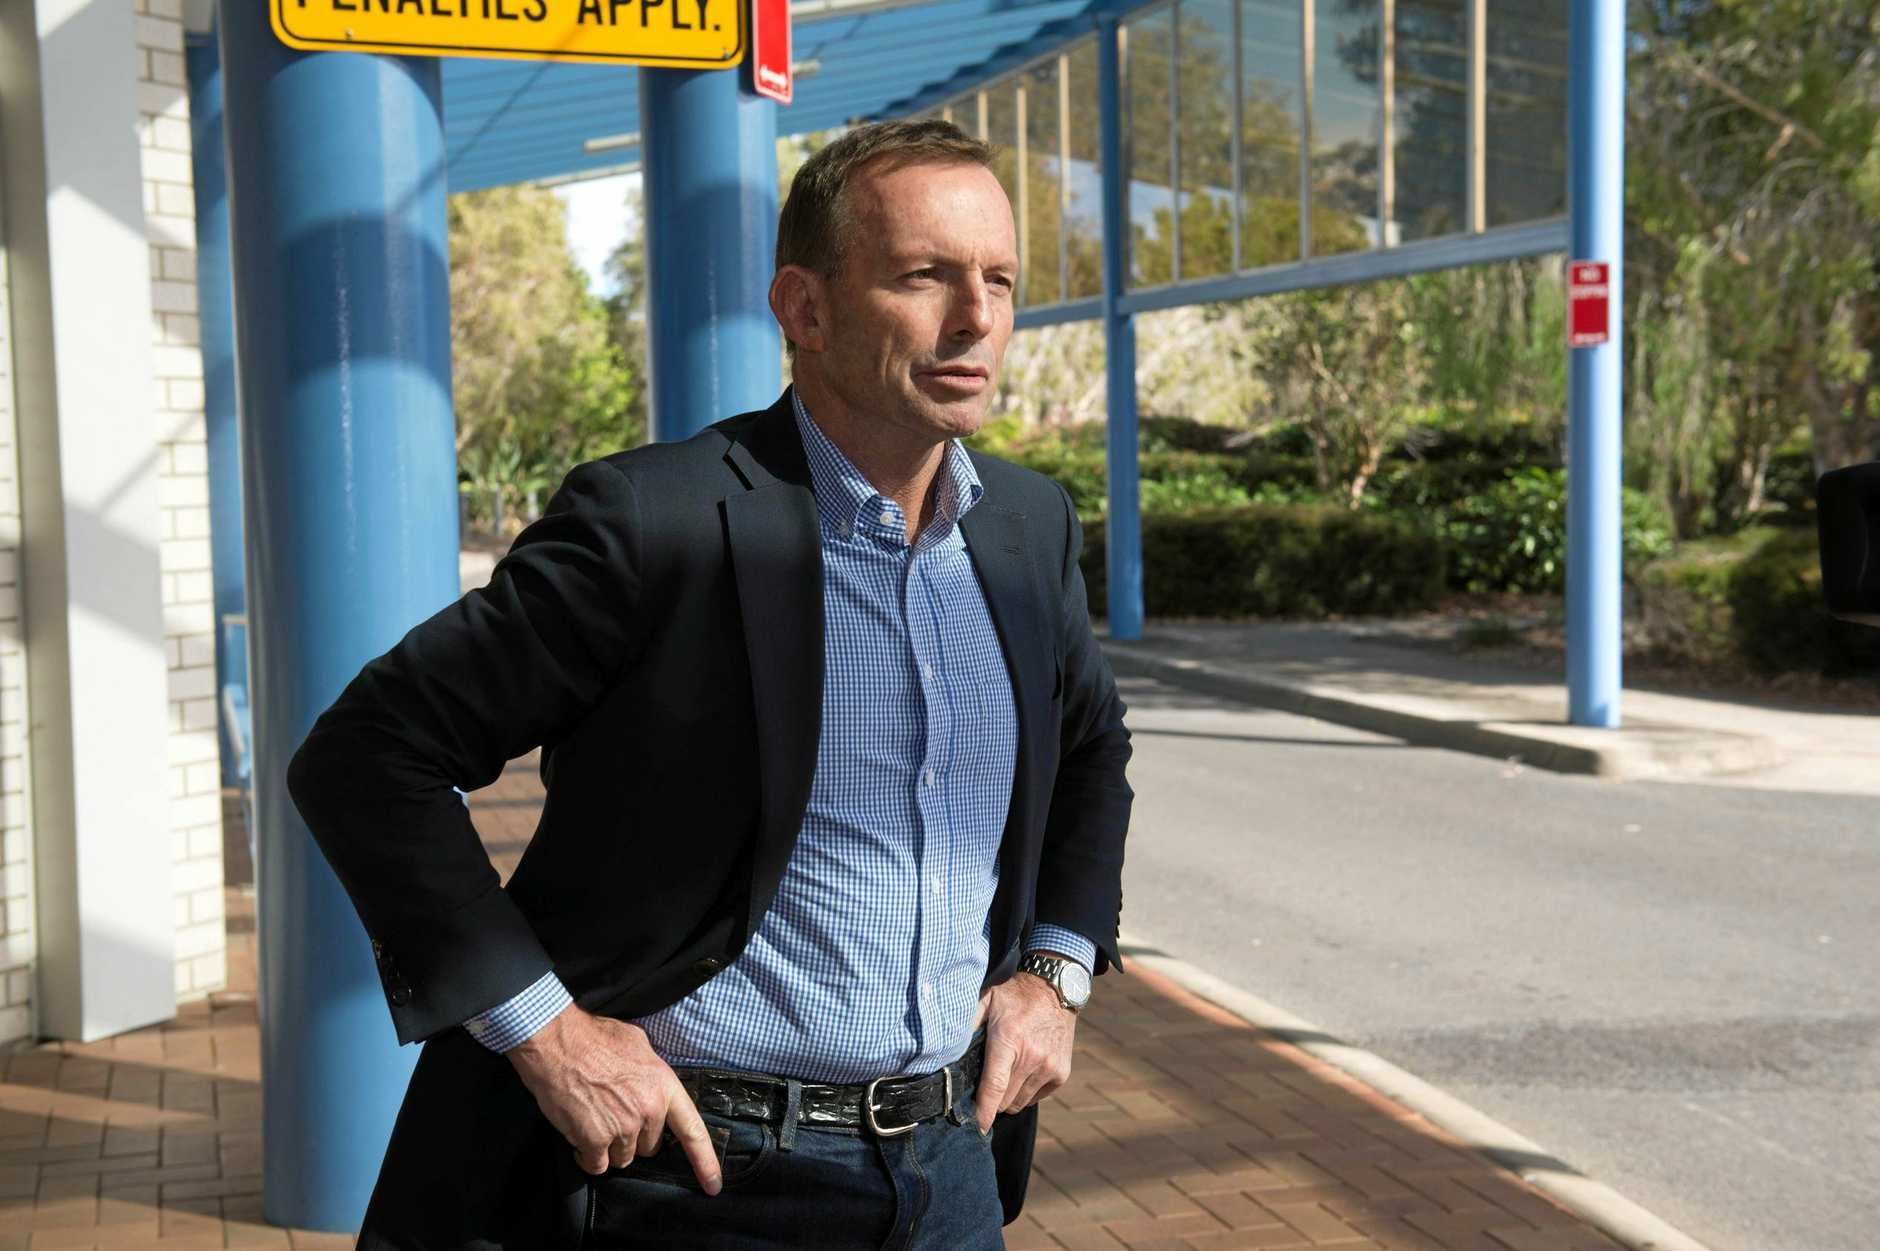 Former Prime Minister Tony Abbott at Coffs Harbour Regional Airport after spending a day on the campaign trail in Cowper. .  20 June  2016.